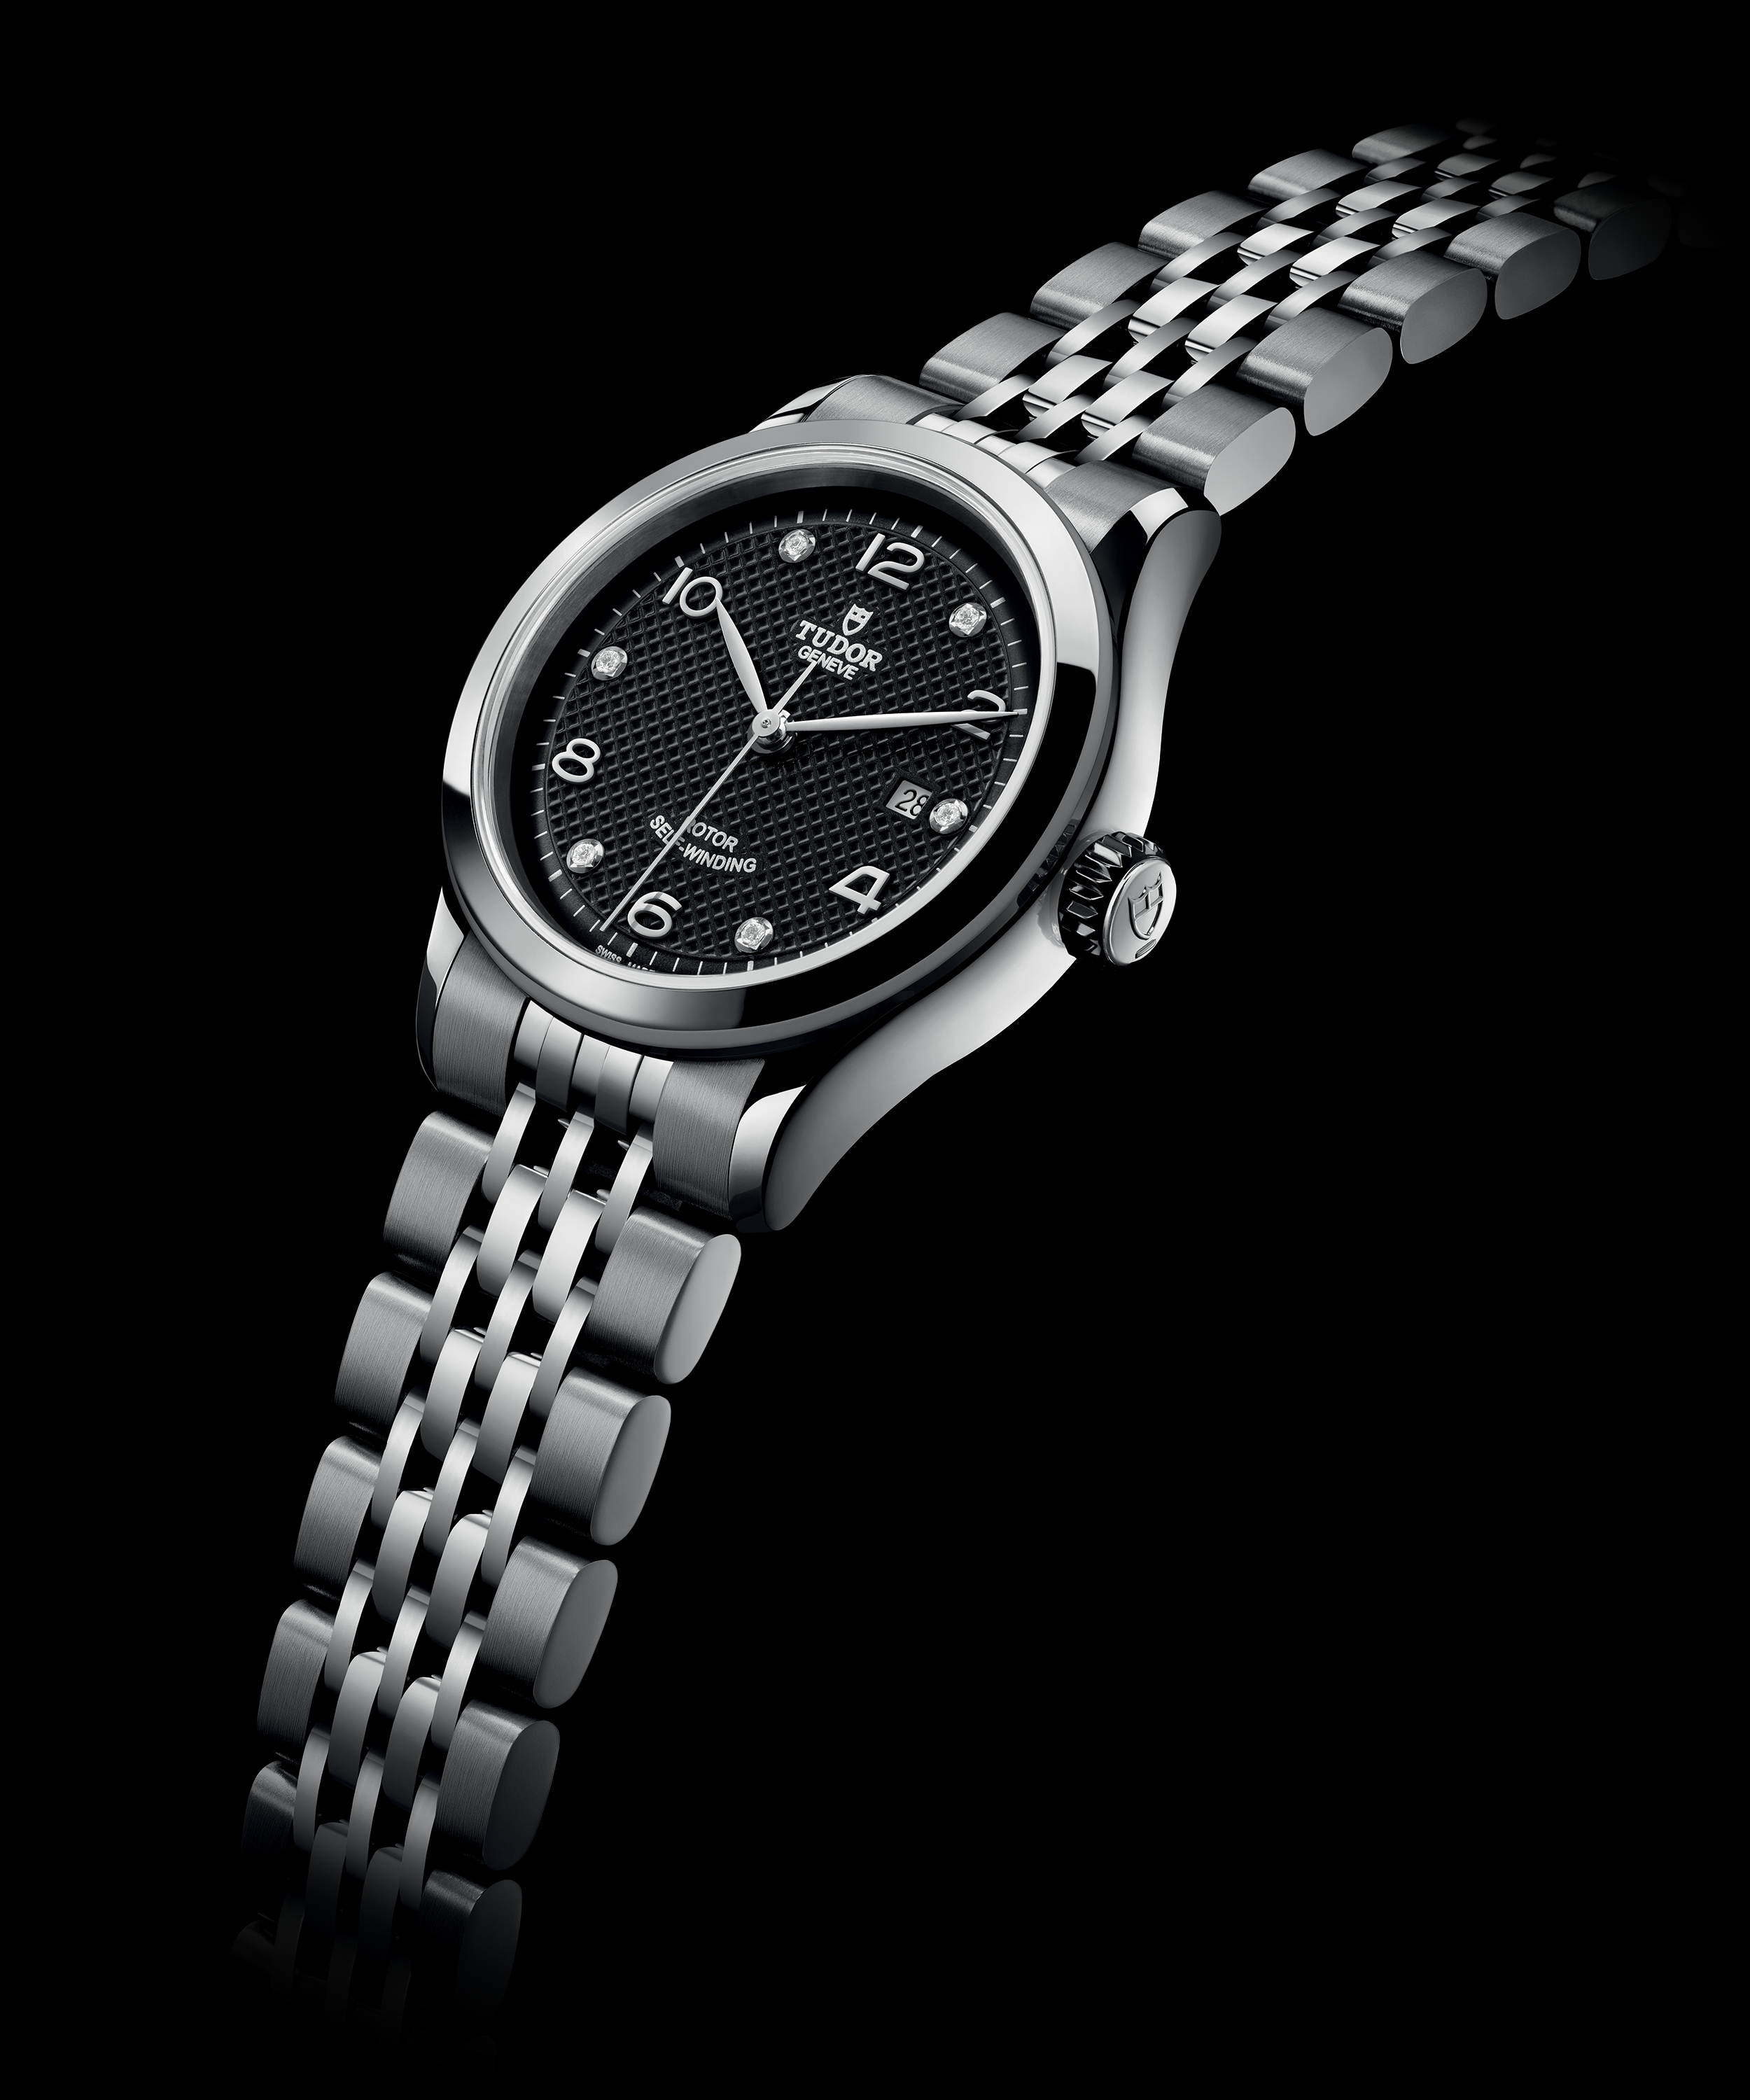 c82c01622a3 Reference. 91350-004, 28 mm steel case, smooth bezel, black dial with  silver index set with 6 diamonds, steel bracelet, steel clasp. AUD$2,650